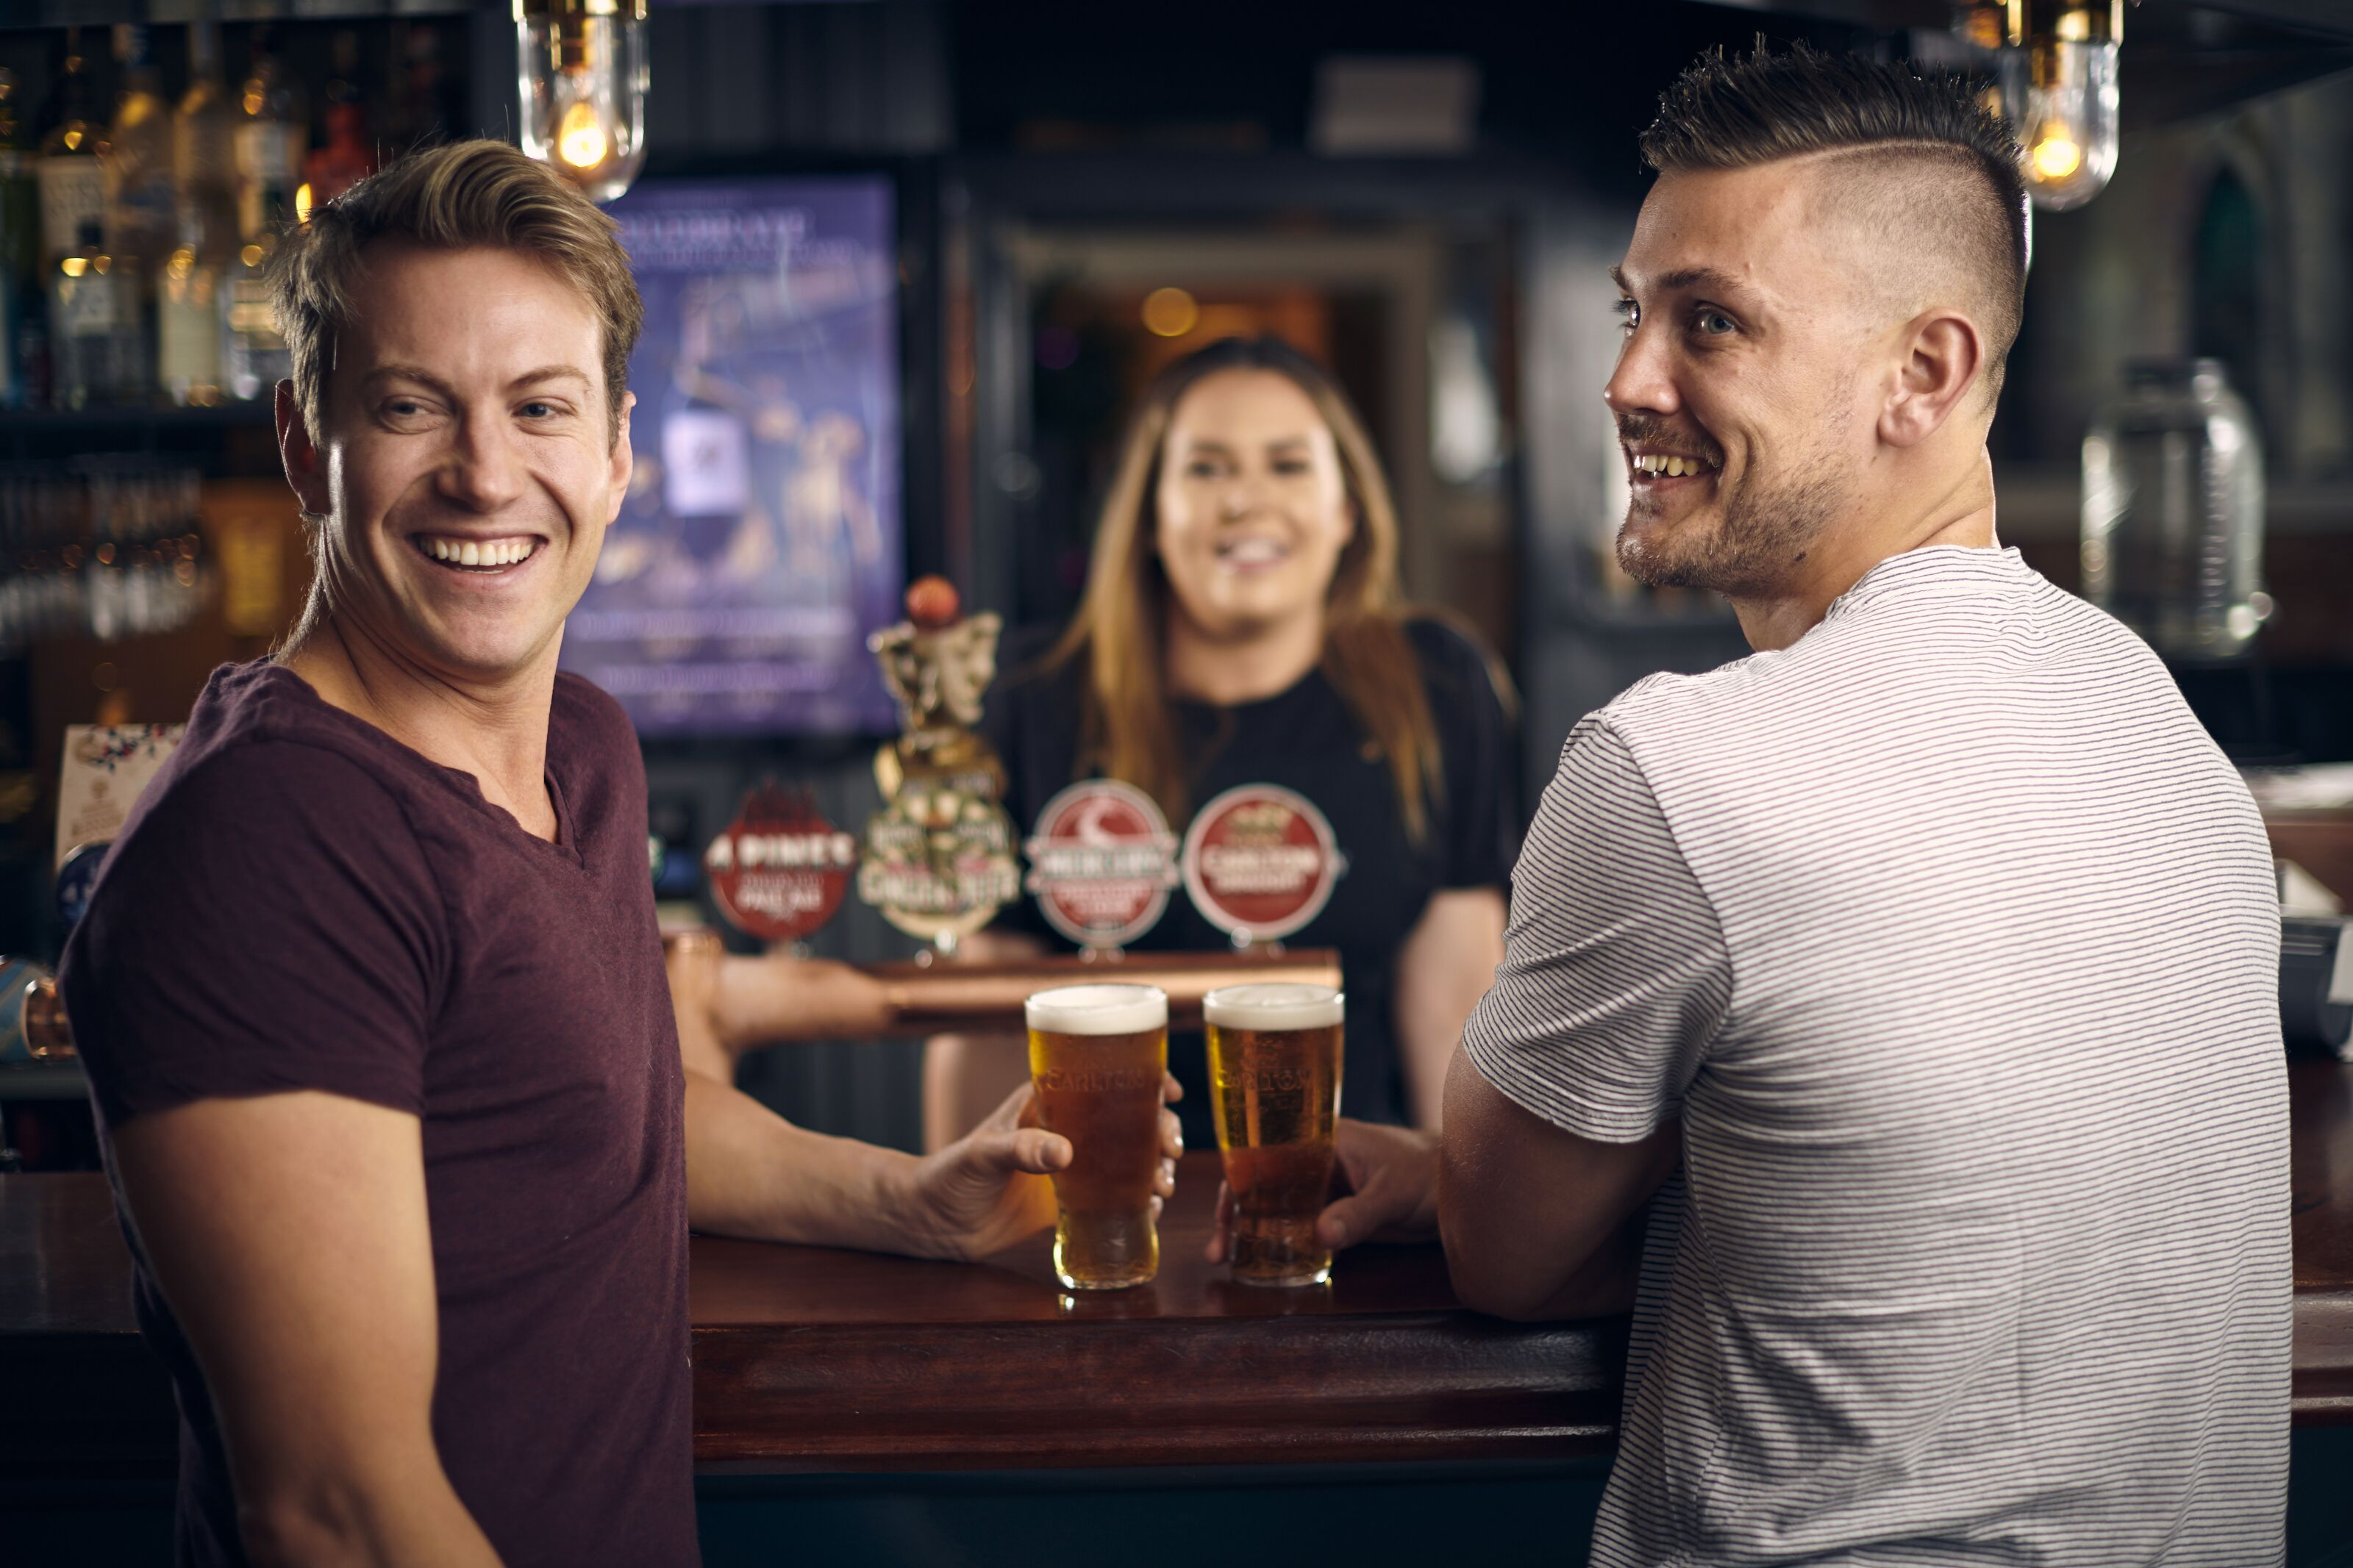 Here's how you can help you local pub during the coronavirus lock-down